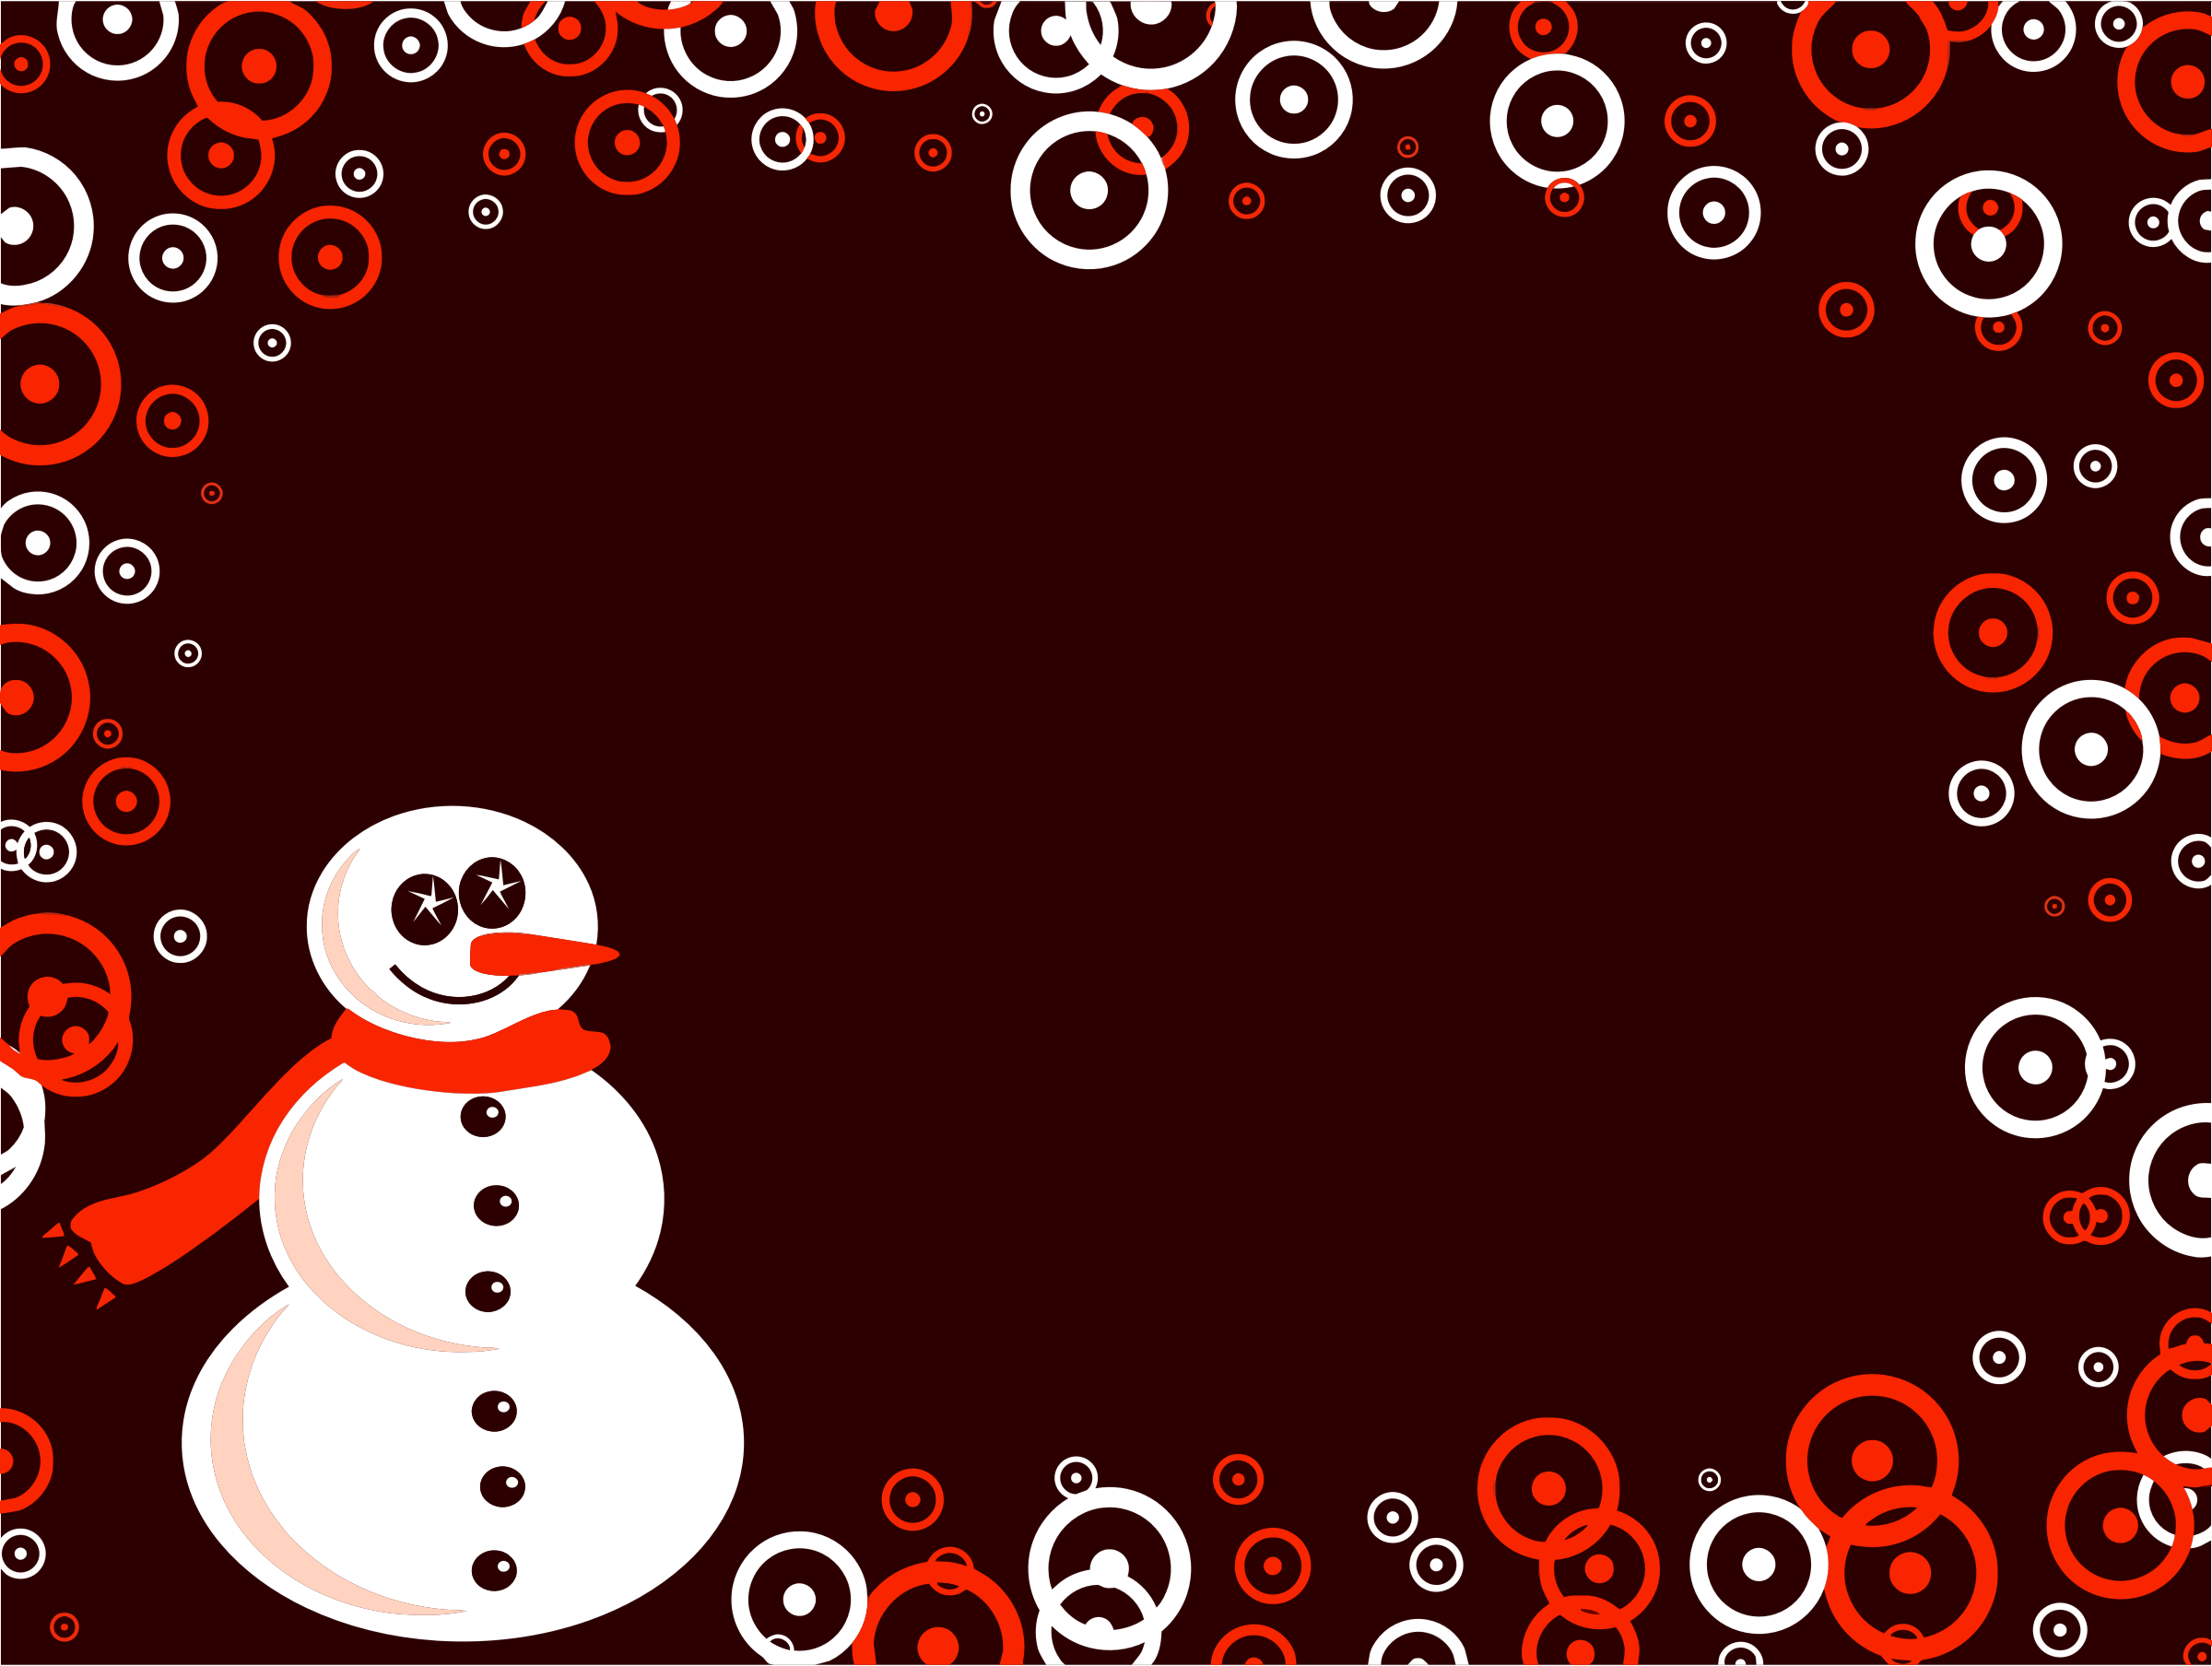 Snowman Background by GDJ